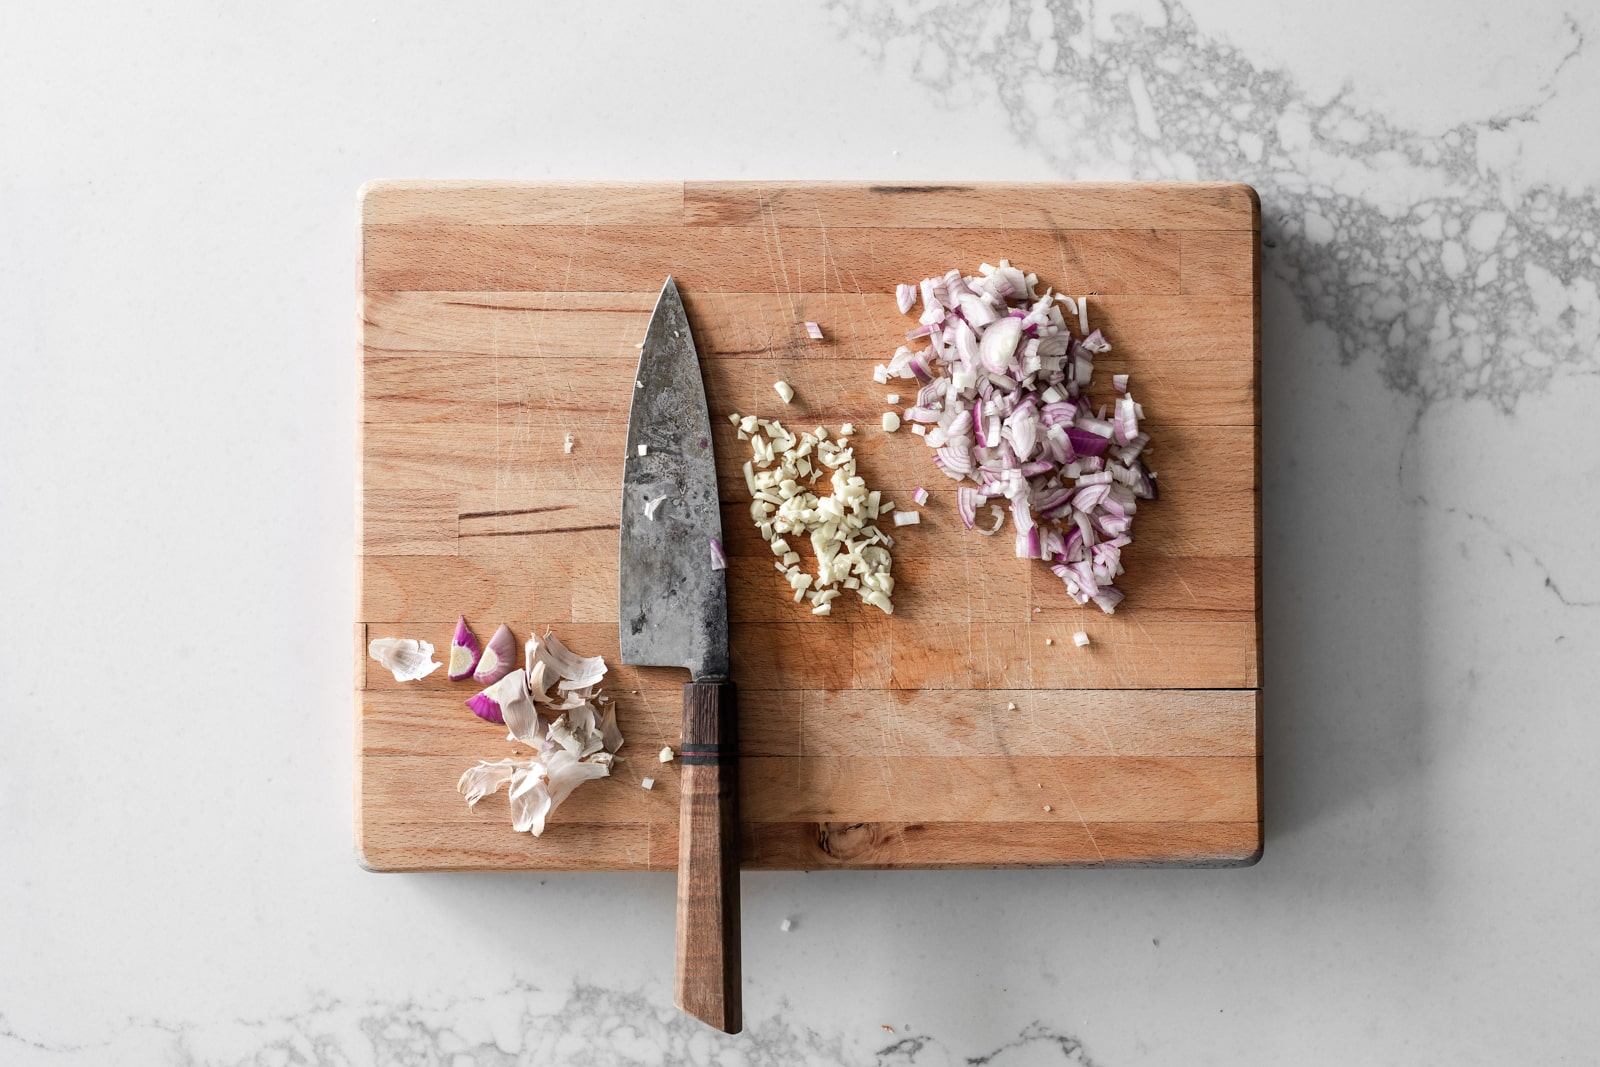 Wood Cutting Board with Knife, Chopped Shallots, Garlic and scraps